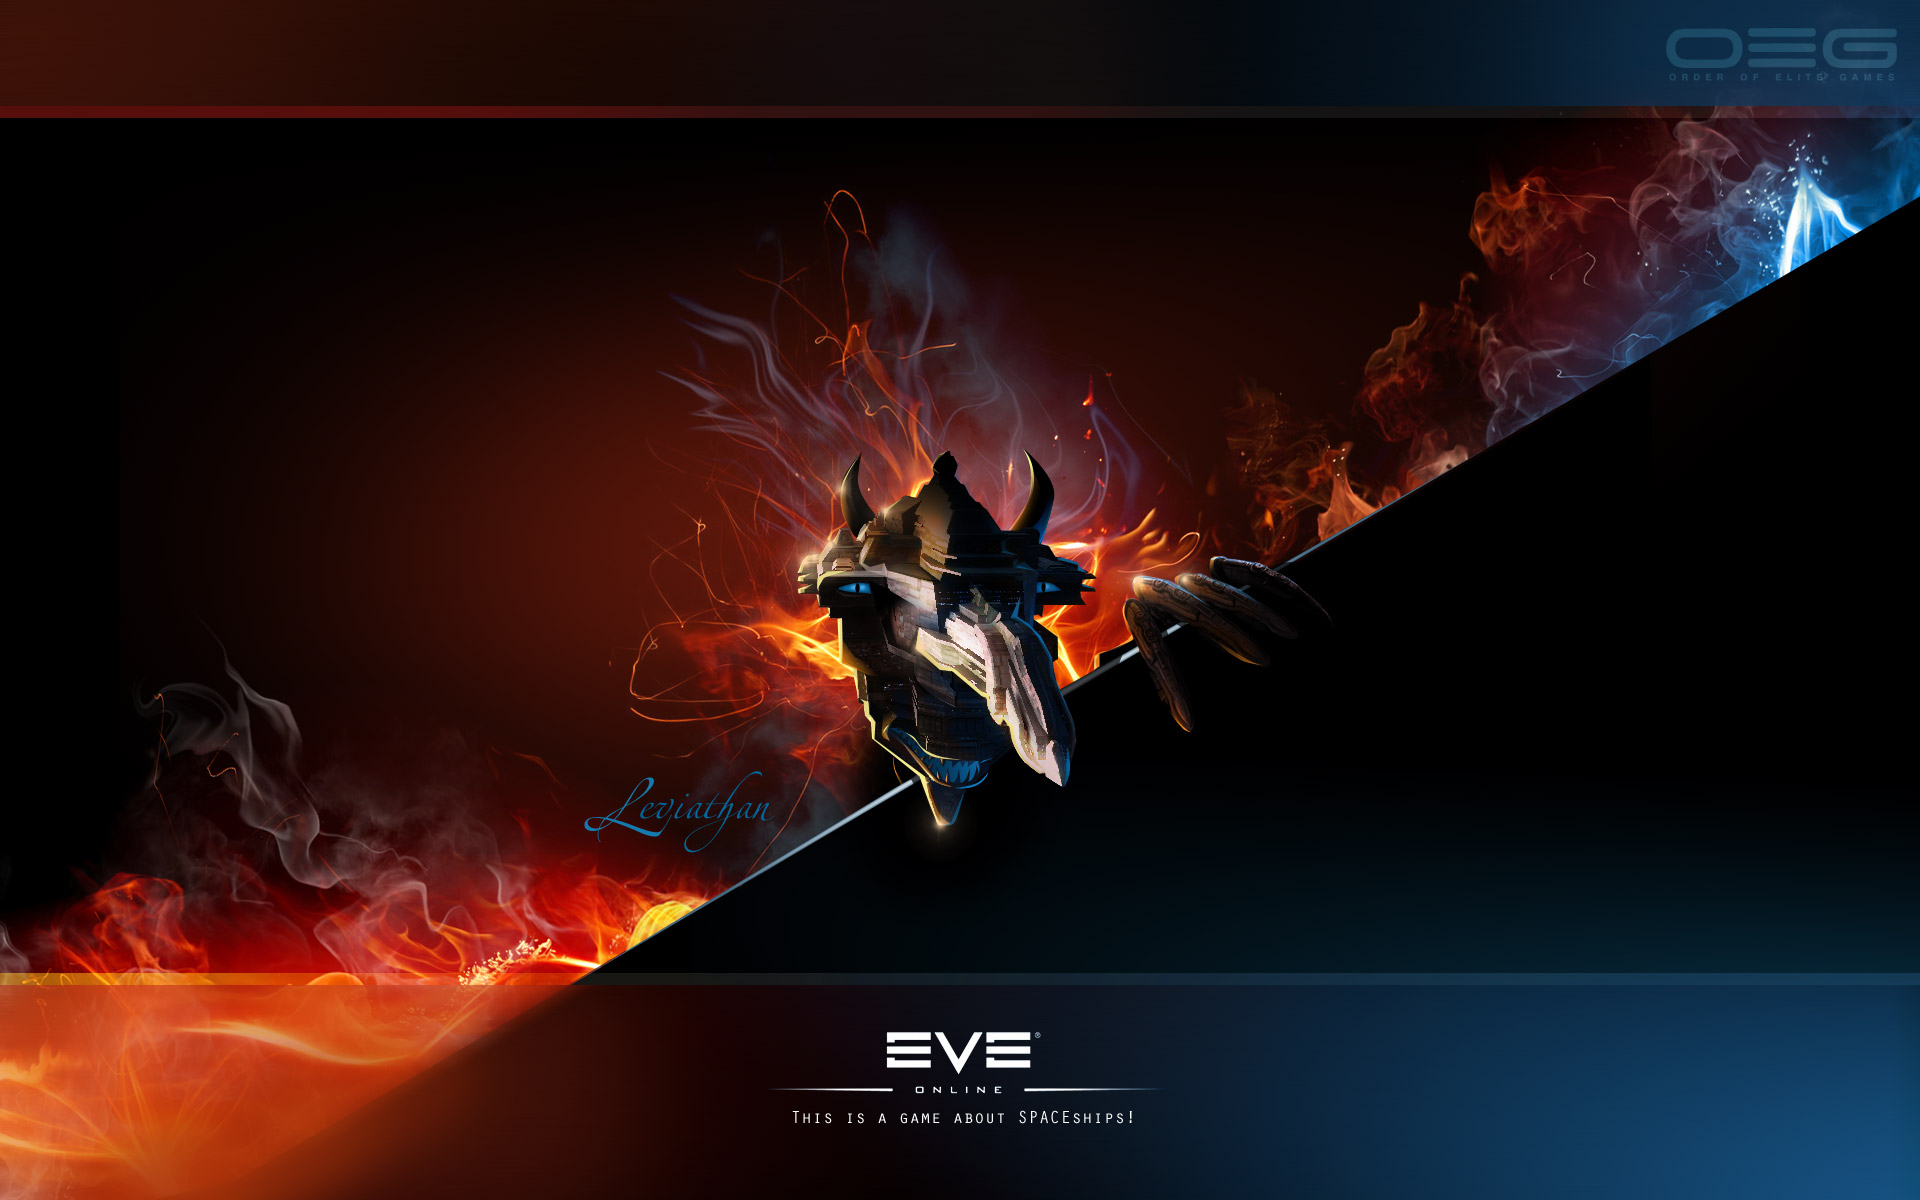 Wallpaper Hd Mu Eve Online Full Hd Wallpaper And Background Image